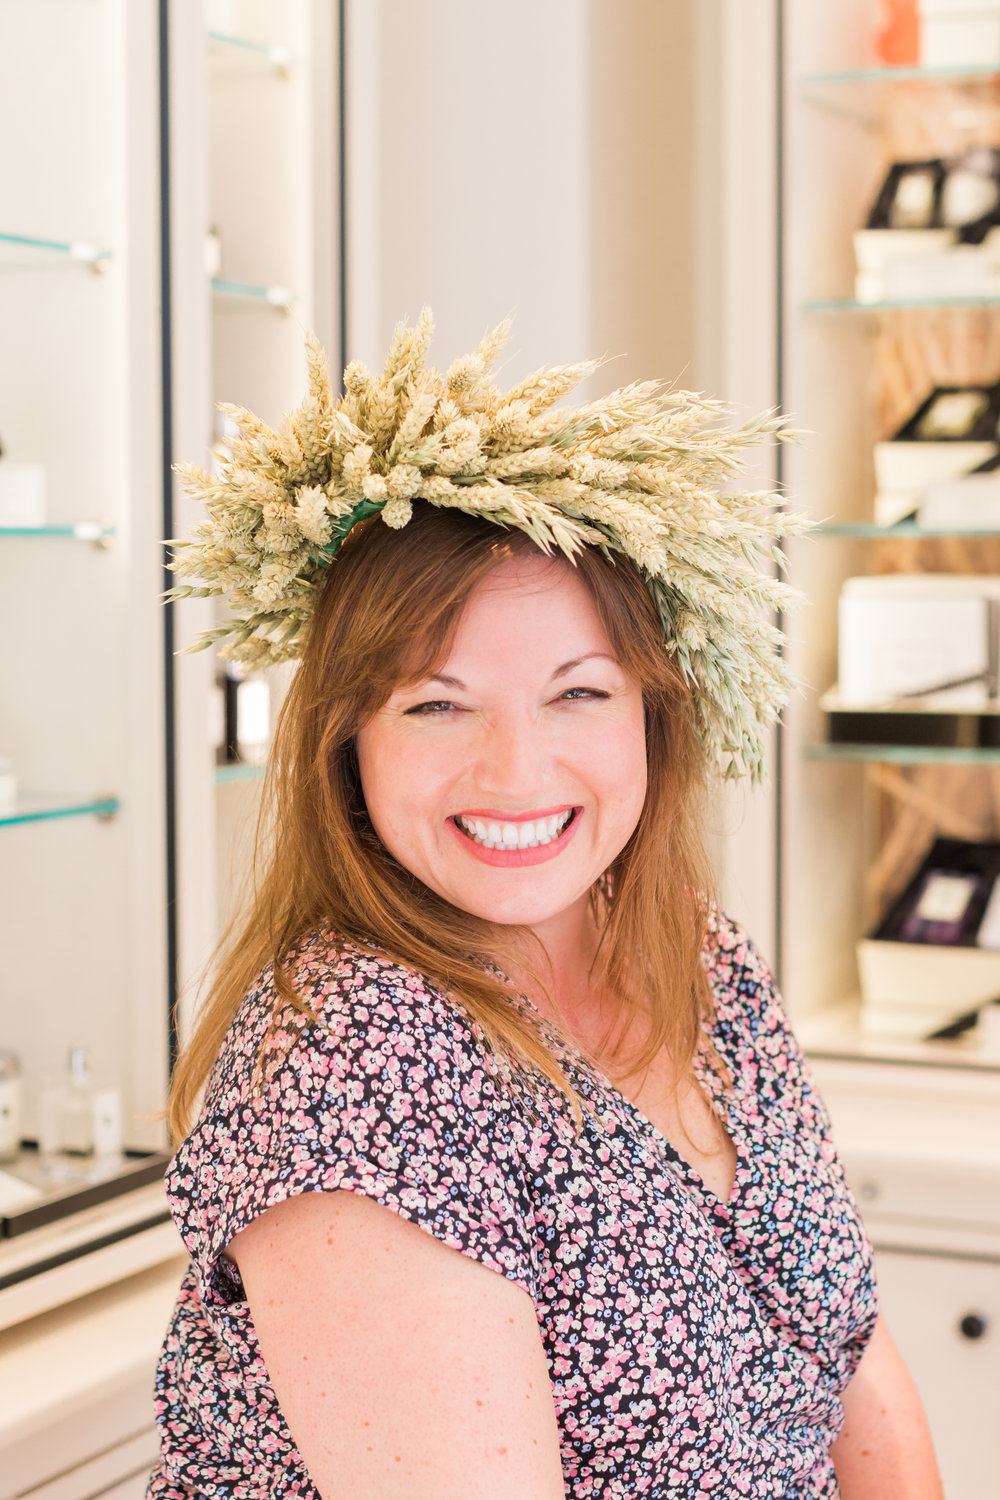 wedding-day-floral-crown.jpg